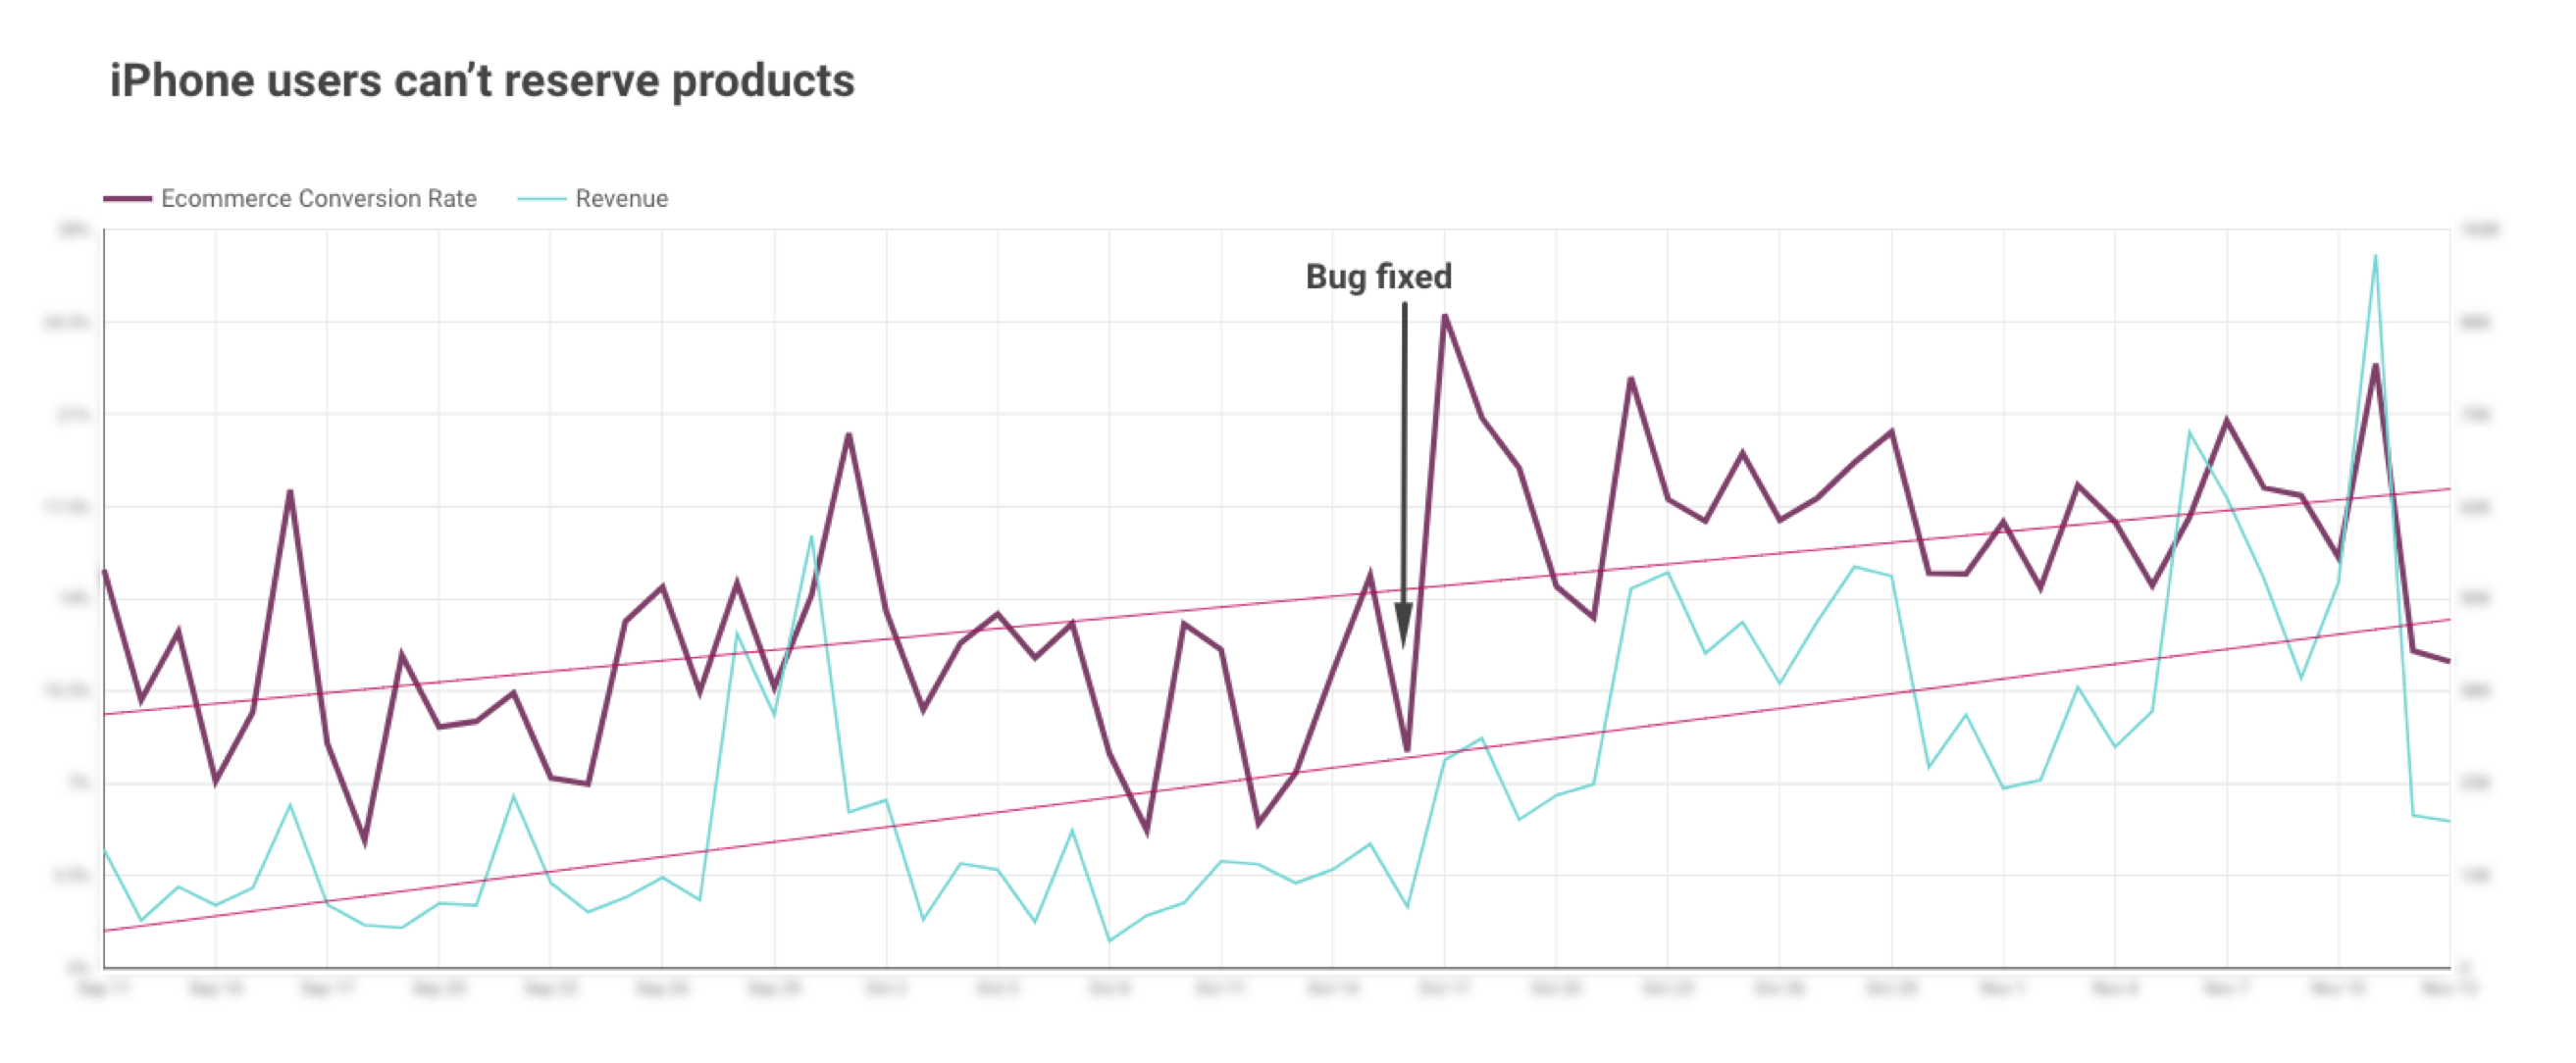 Timeline illustrating eCommerce Conversion Rate and Revenue before and after bug on iPhones was fixed